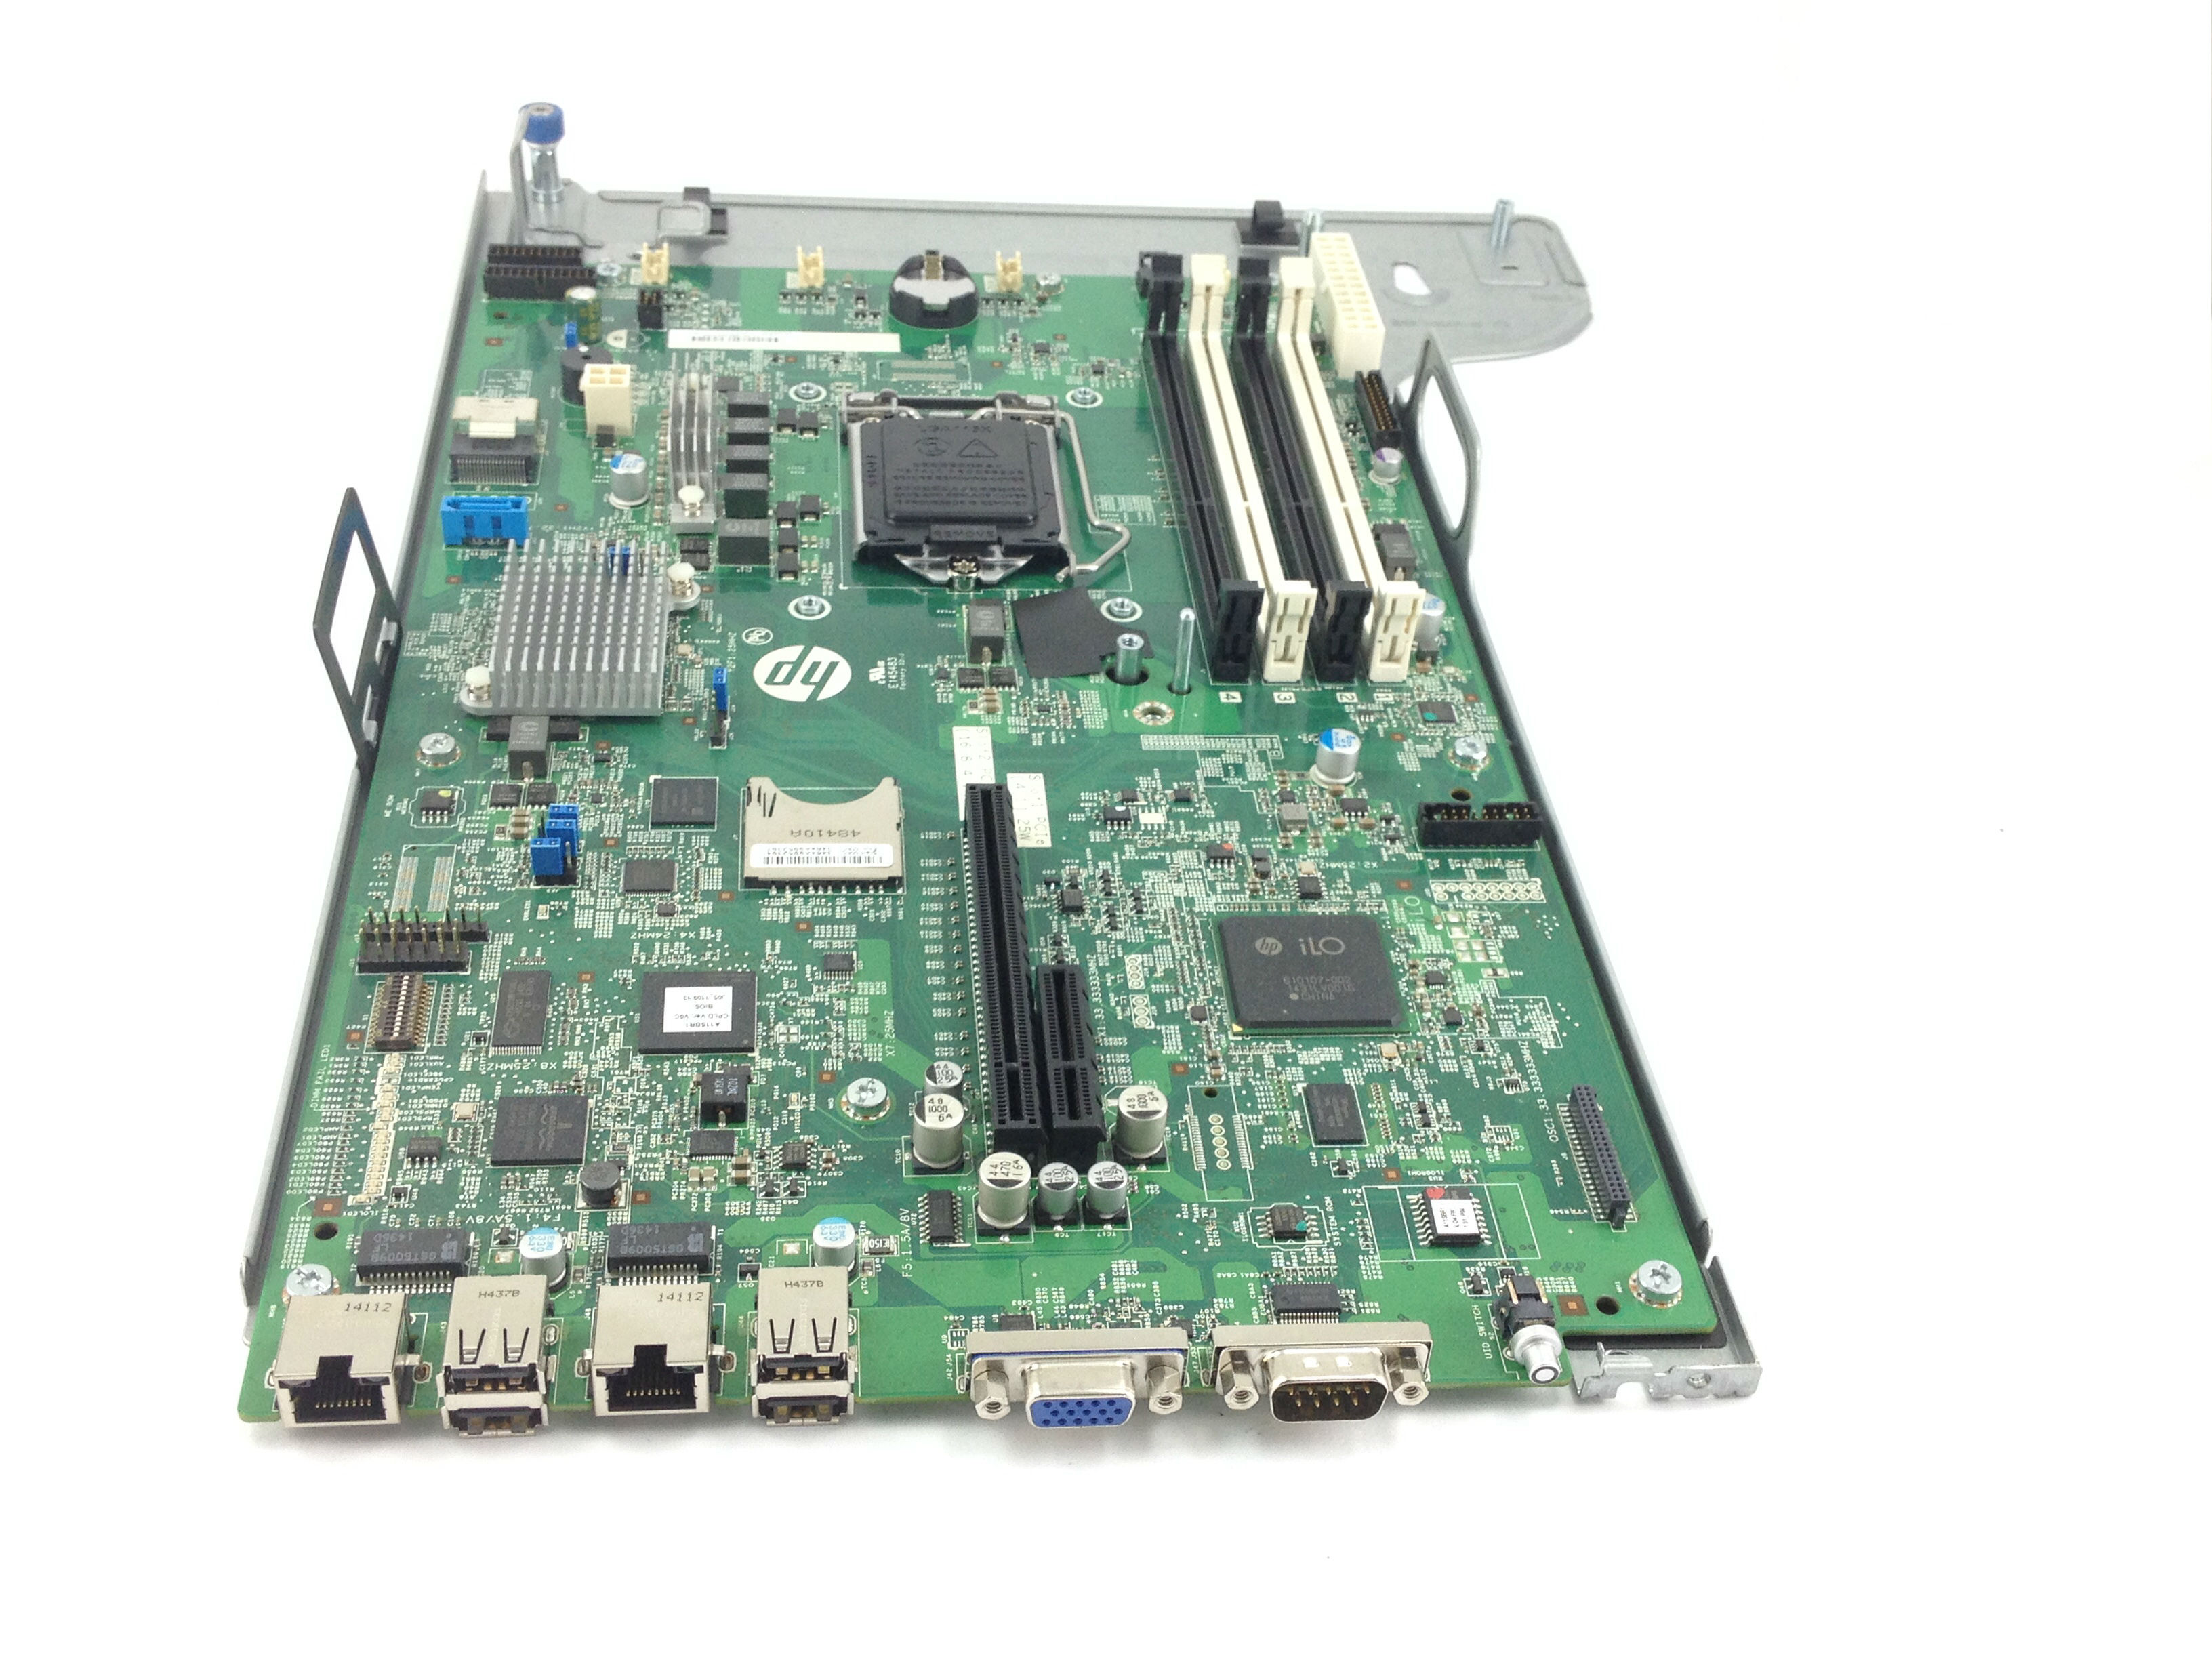 HP DL320E G8 V1 Server System Board w/ Tray (686659-001)